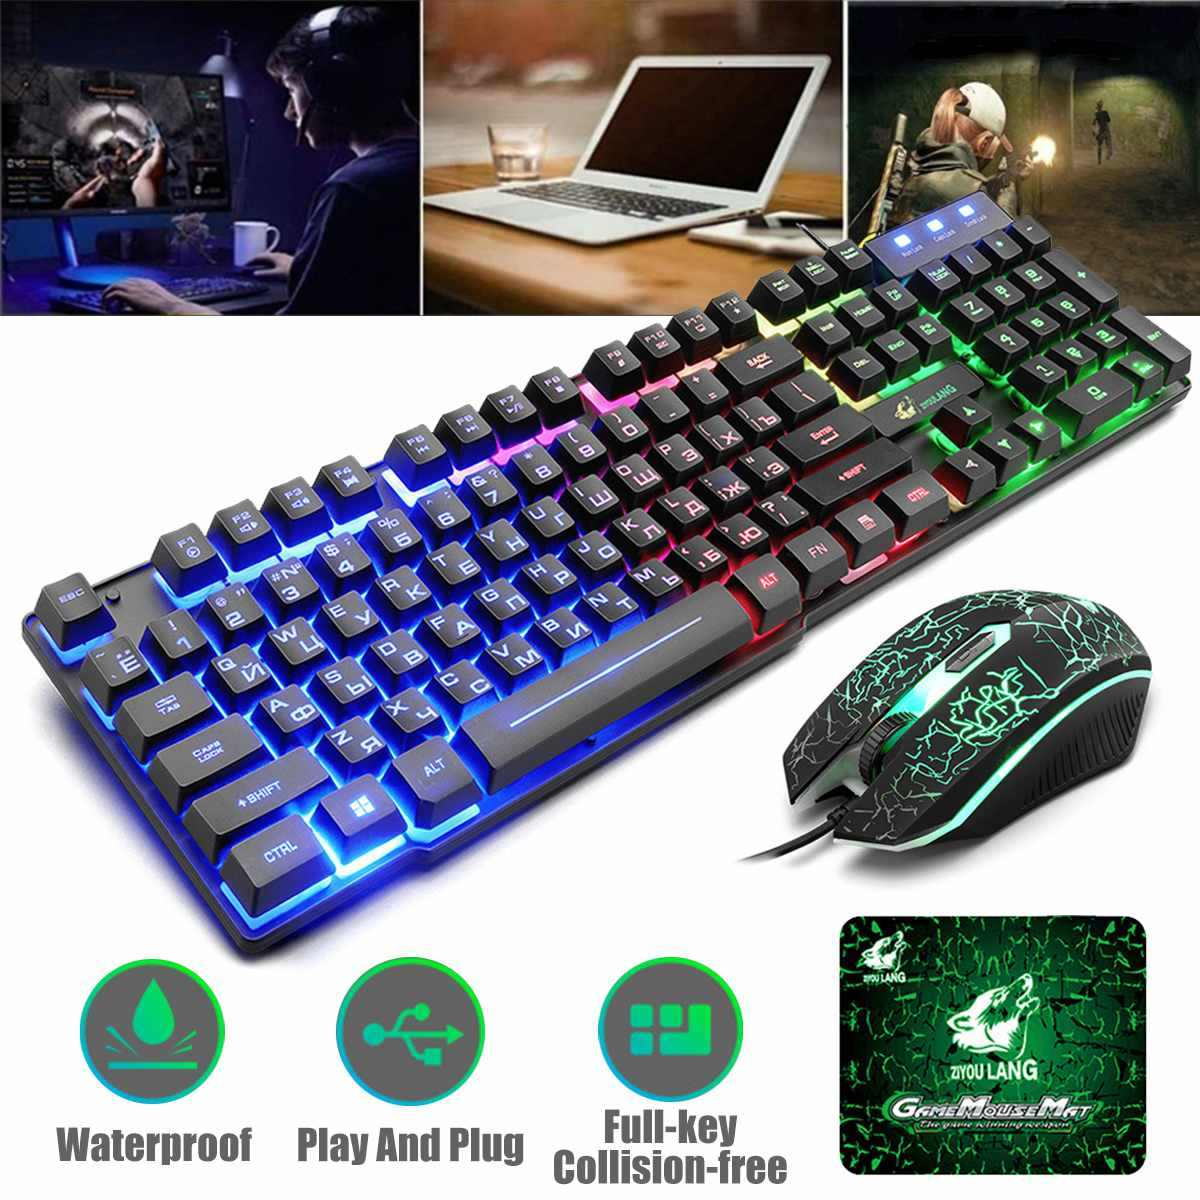 T5 Rainbow Backlight USB Keyboard 104 keys Ergonomic Gaming English Russian Keyboard And Mouse Set for PC Laptop with Mouse Pad